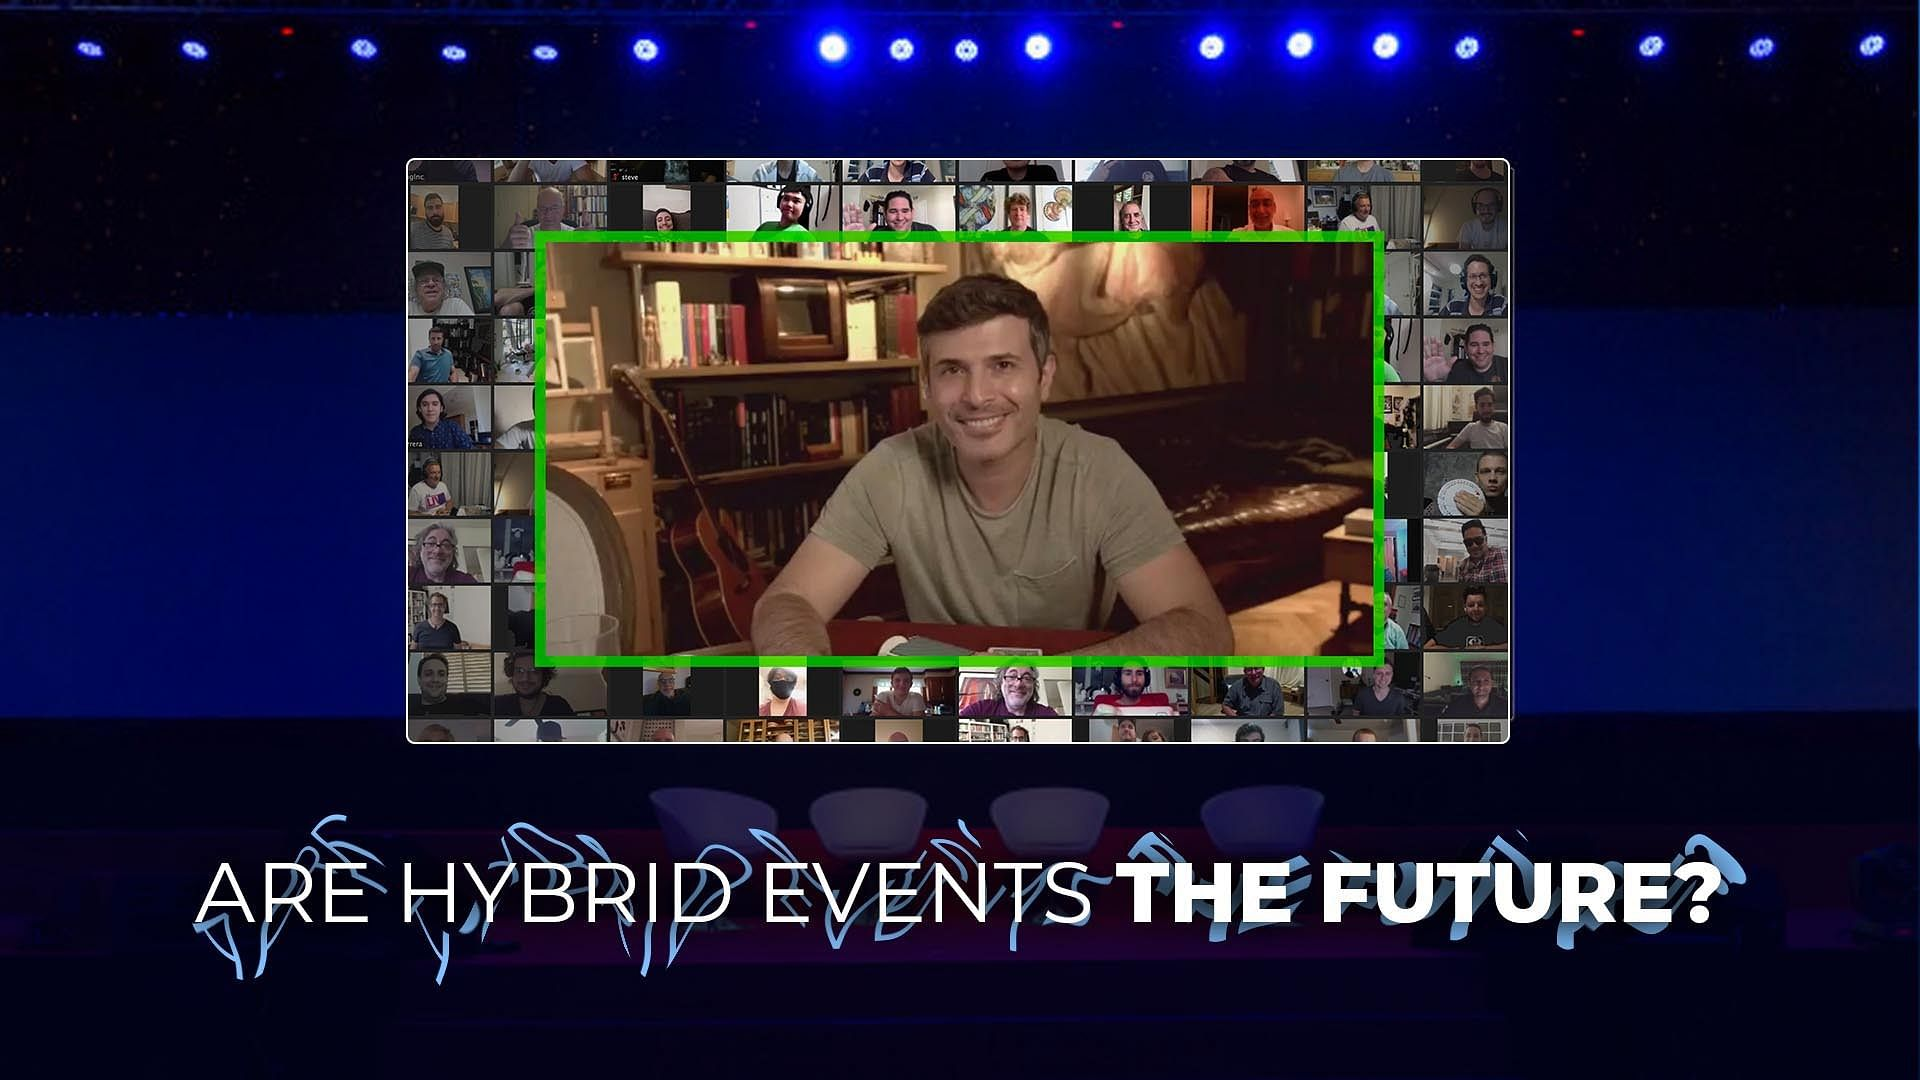 Are Hybrid Events The Future?